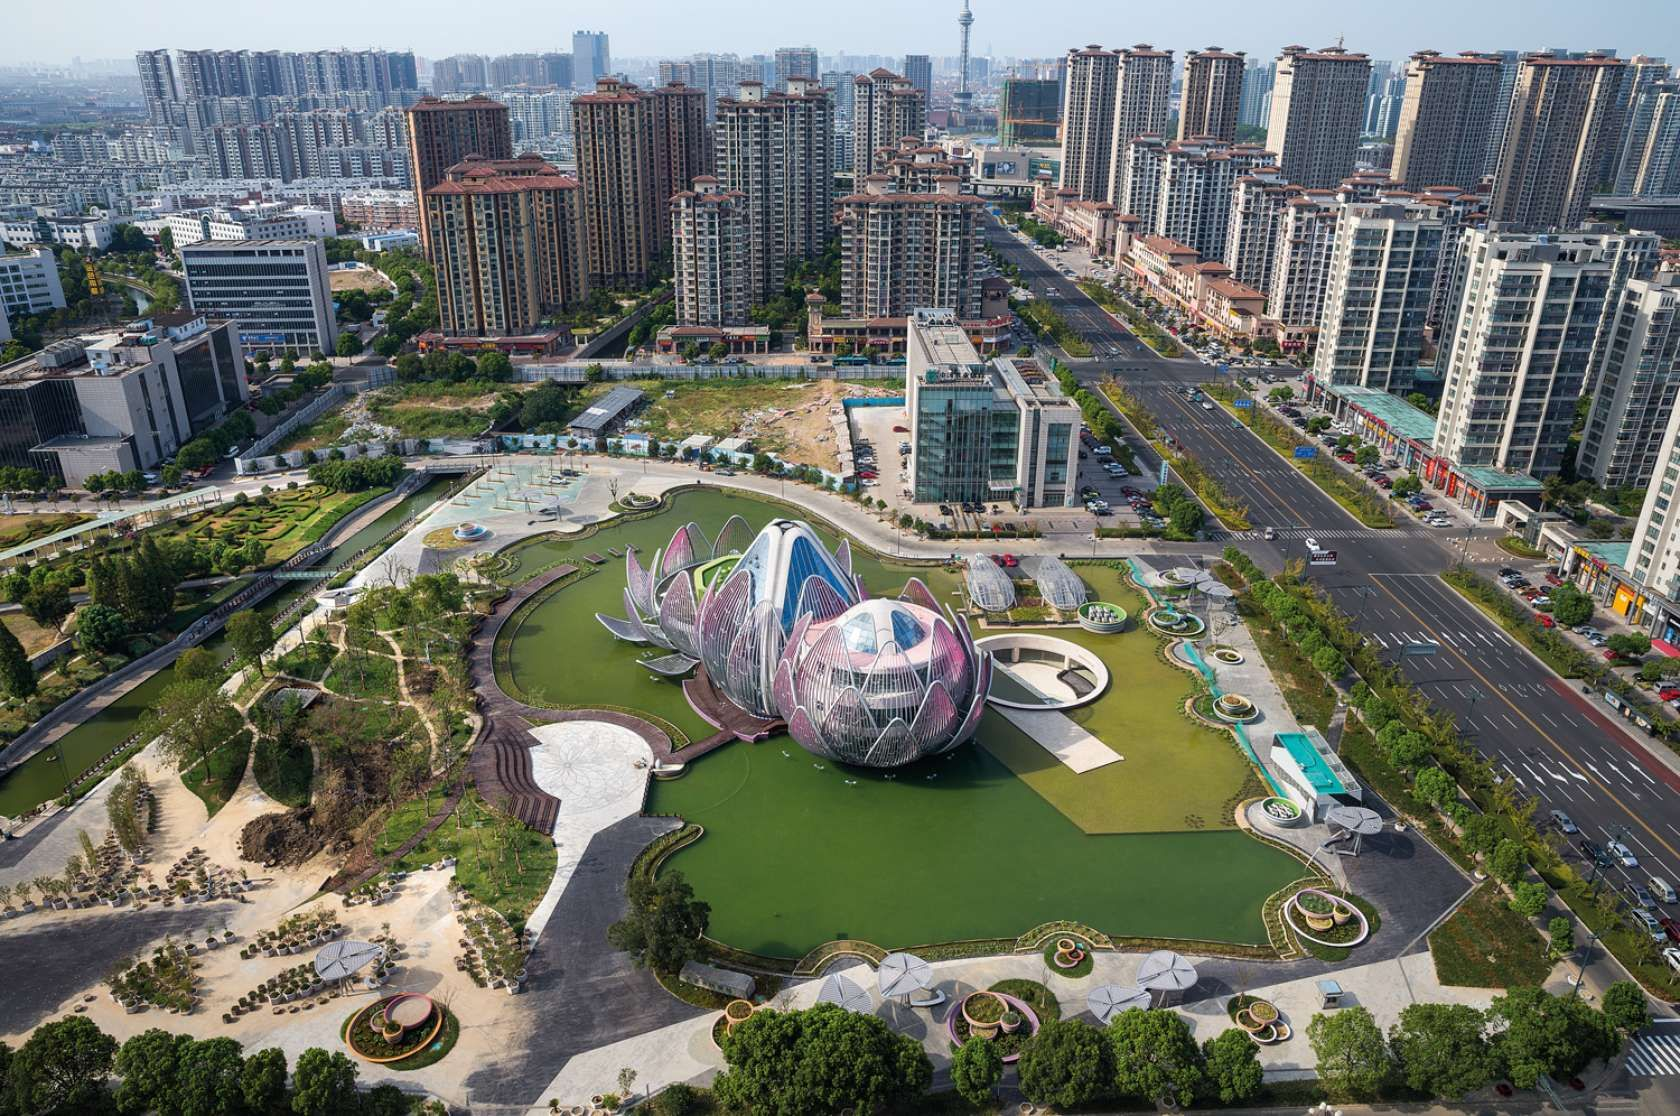 Chinas latest bizarre building is a giant ethereal lotus flower the lotus exhibition center is an icon for the city of wujin conceived as an addition to an existing underground building with a lake top the center is a izmirmasajfo